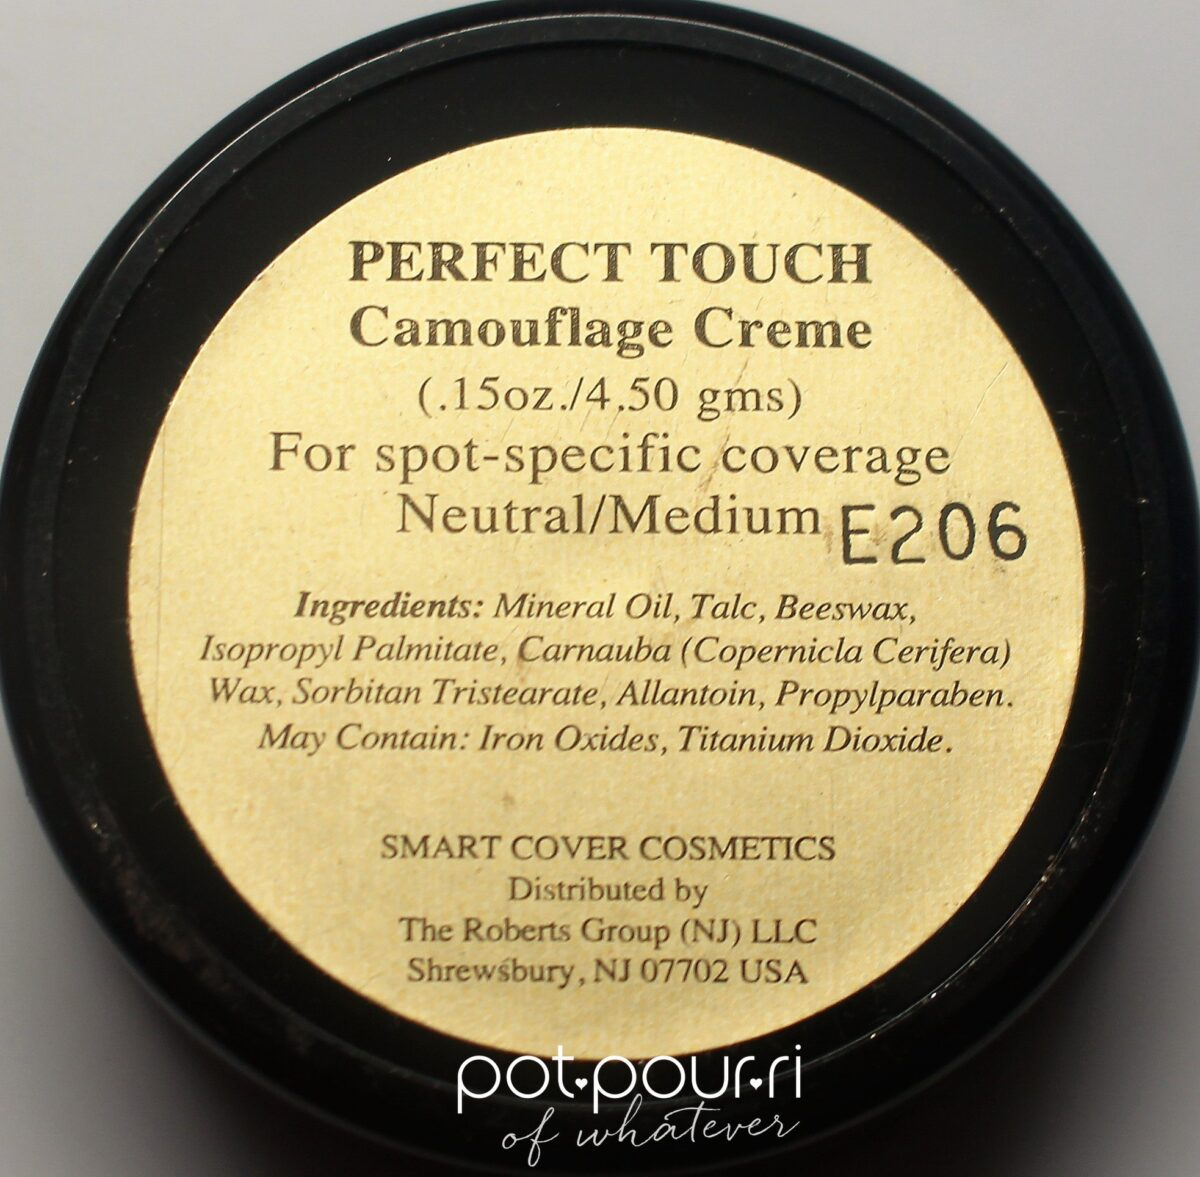 Smart-cover-neutral-medium-perfect-touch-camouflage-cream-ingredients-